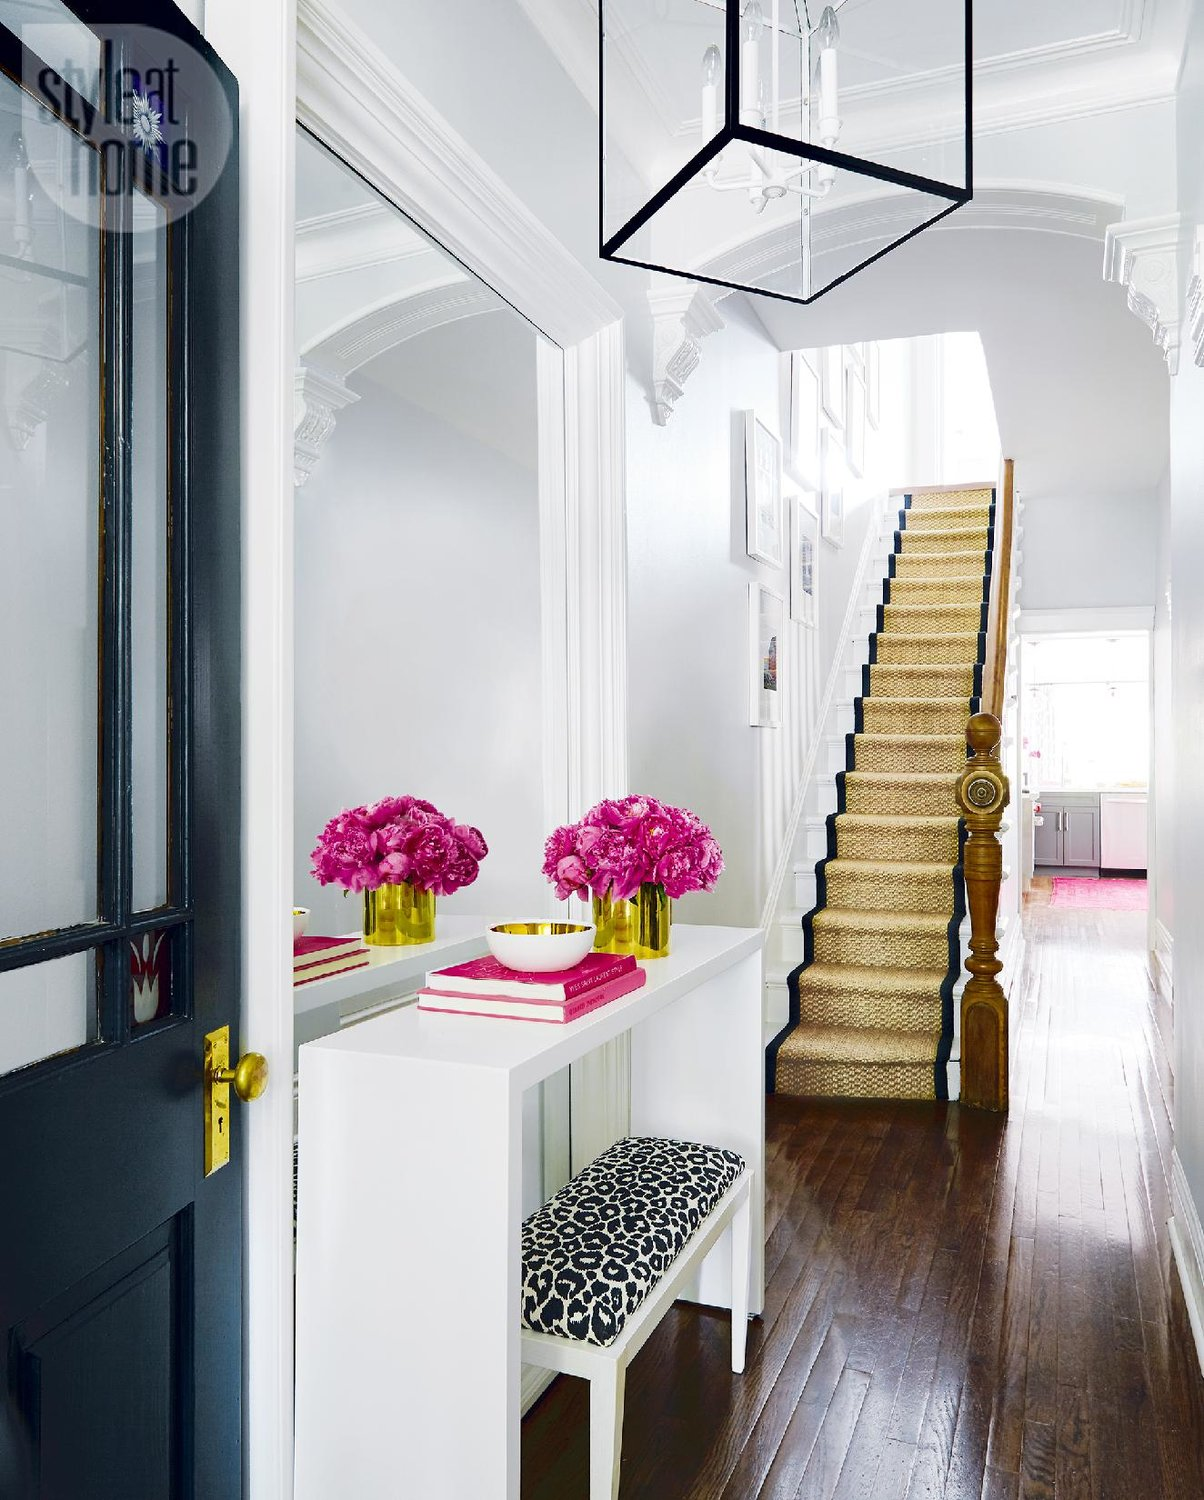 decorate narrow entryway hallway entrance. blackfrontdoorentrywayentrancehallwayideashow decorate narrow entryway hallway entrance 5